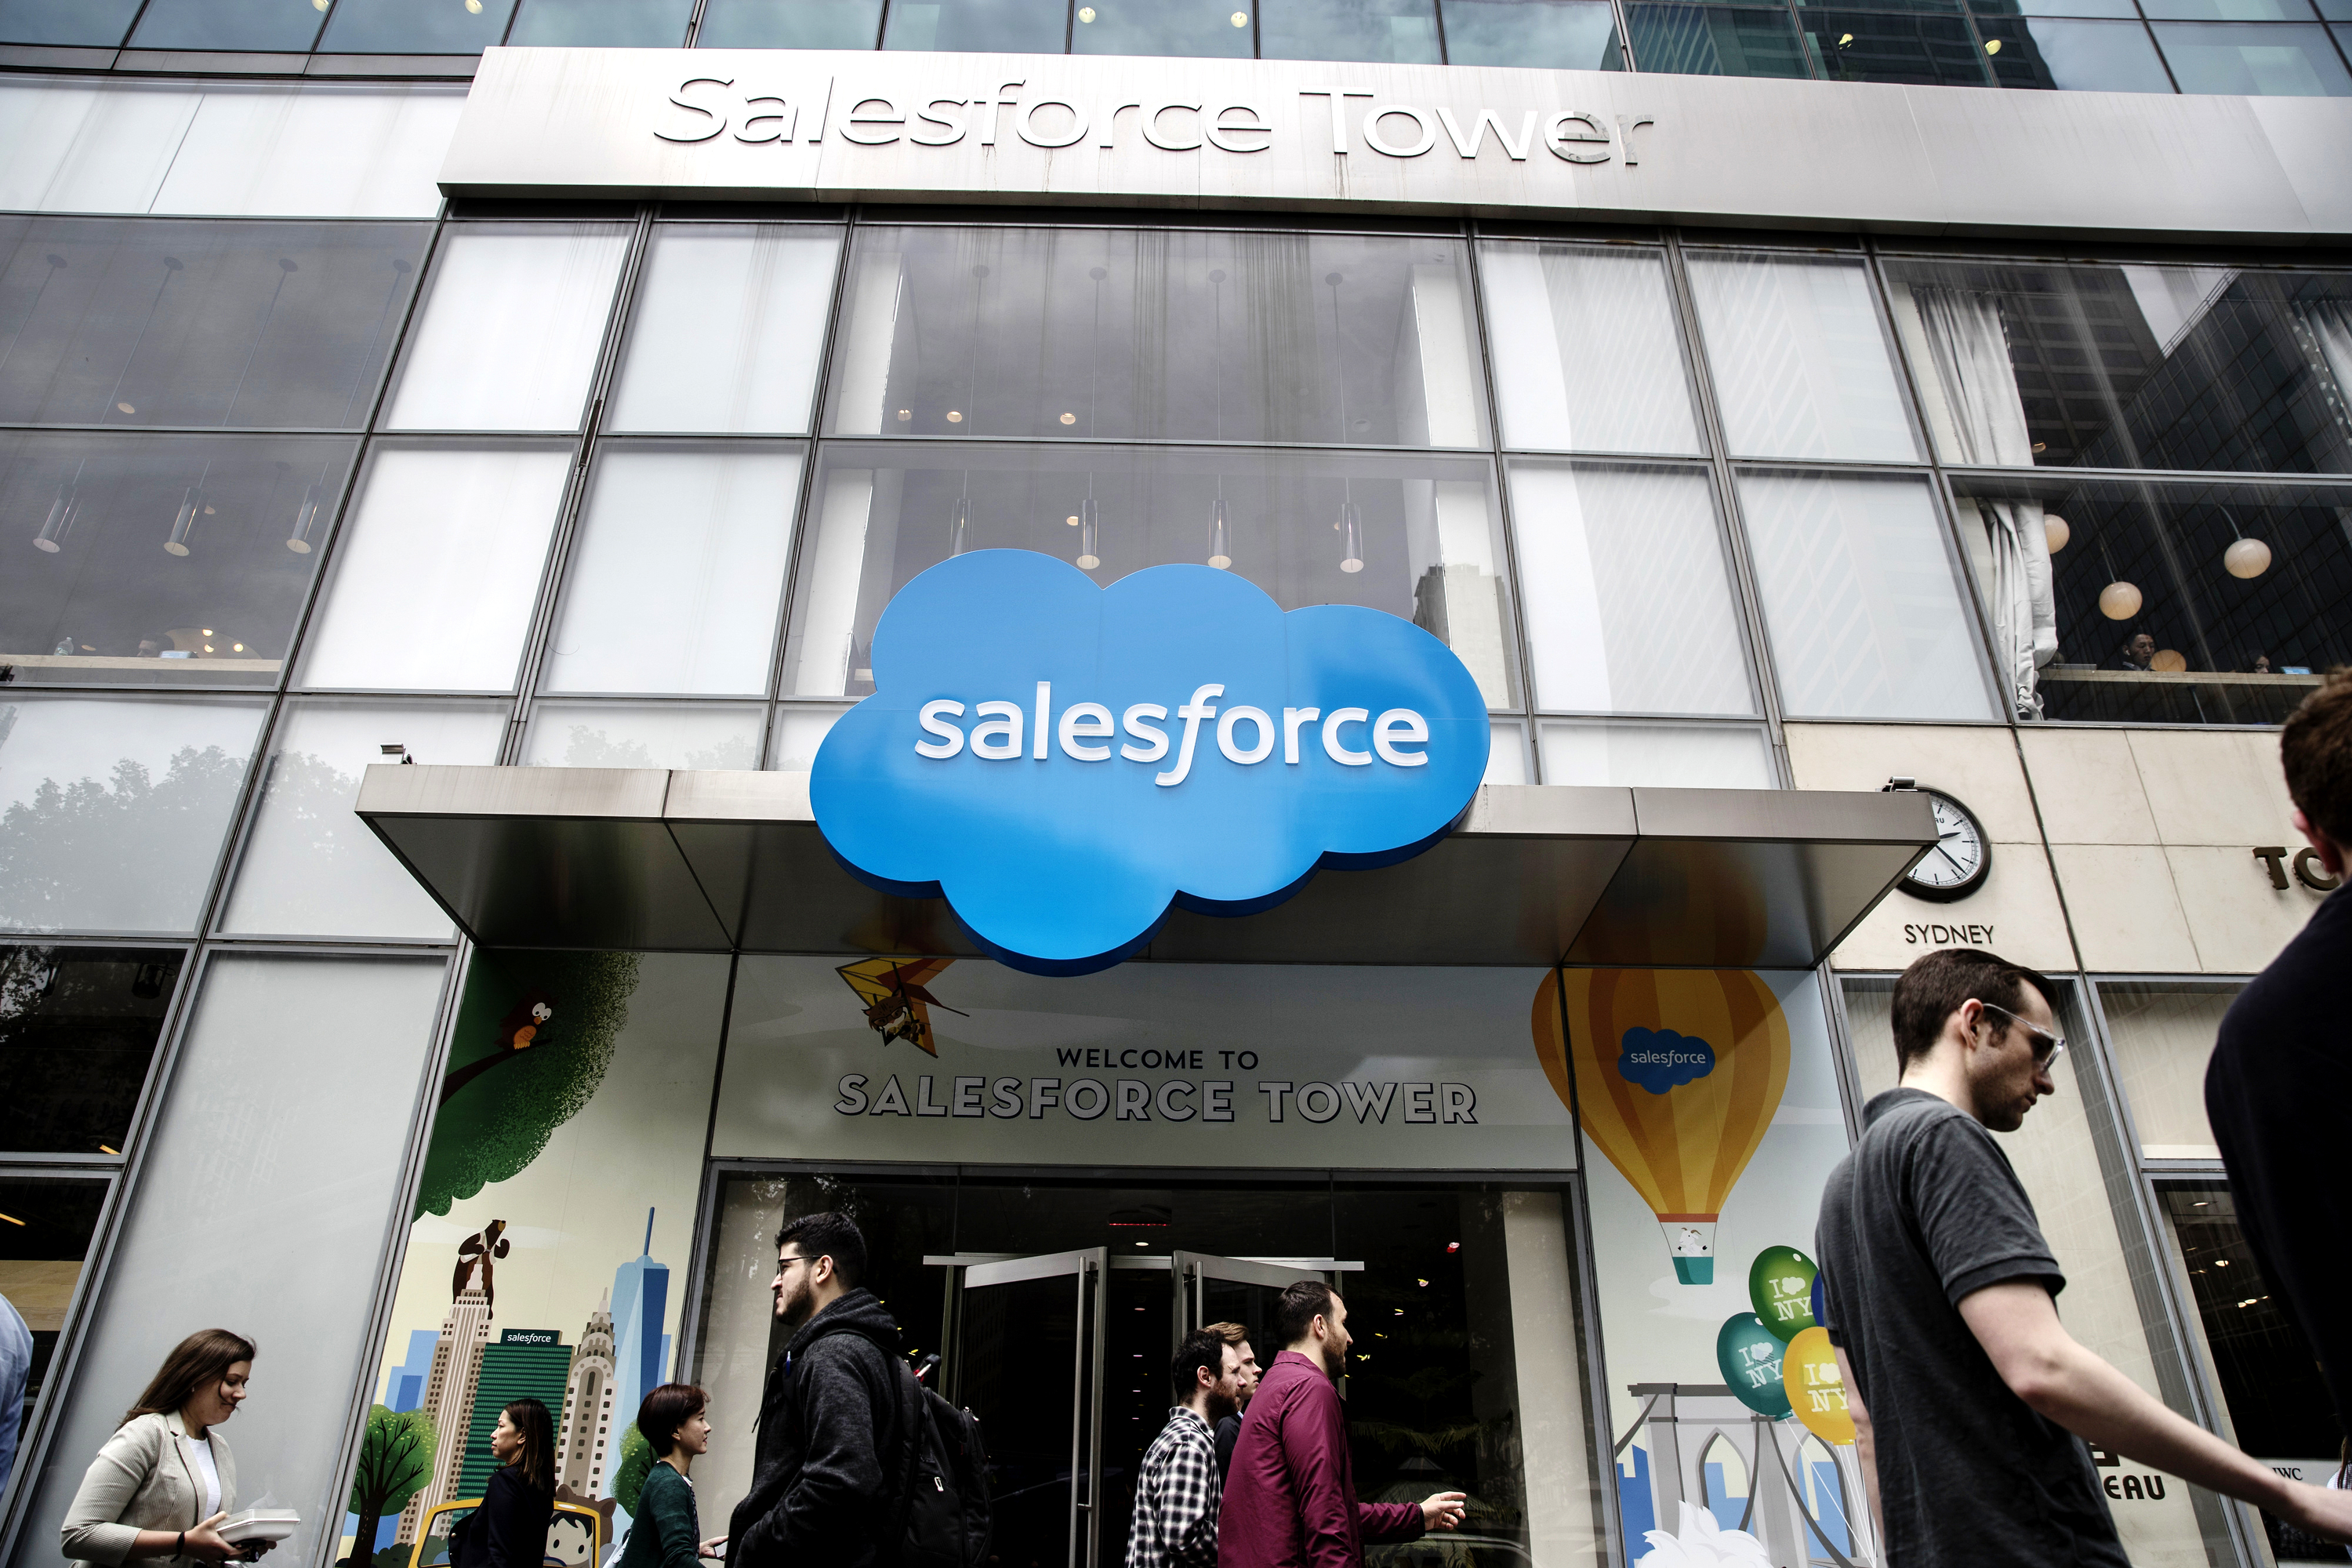 Salesforce is set to buy data visualization company Tableau